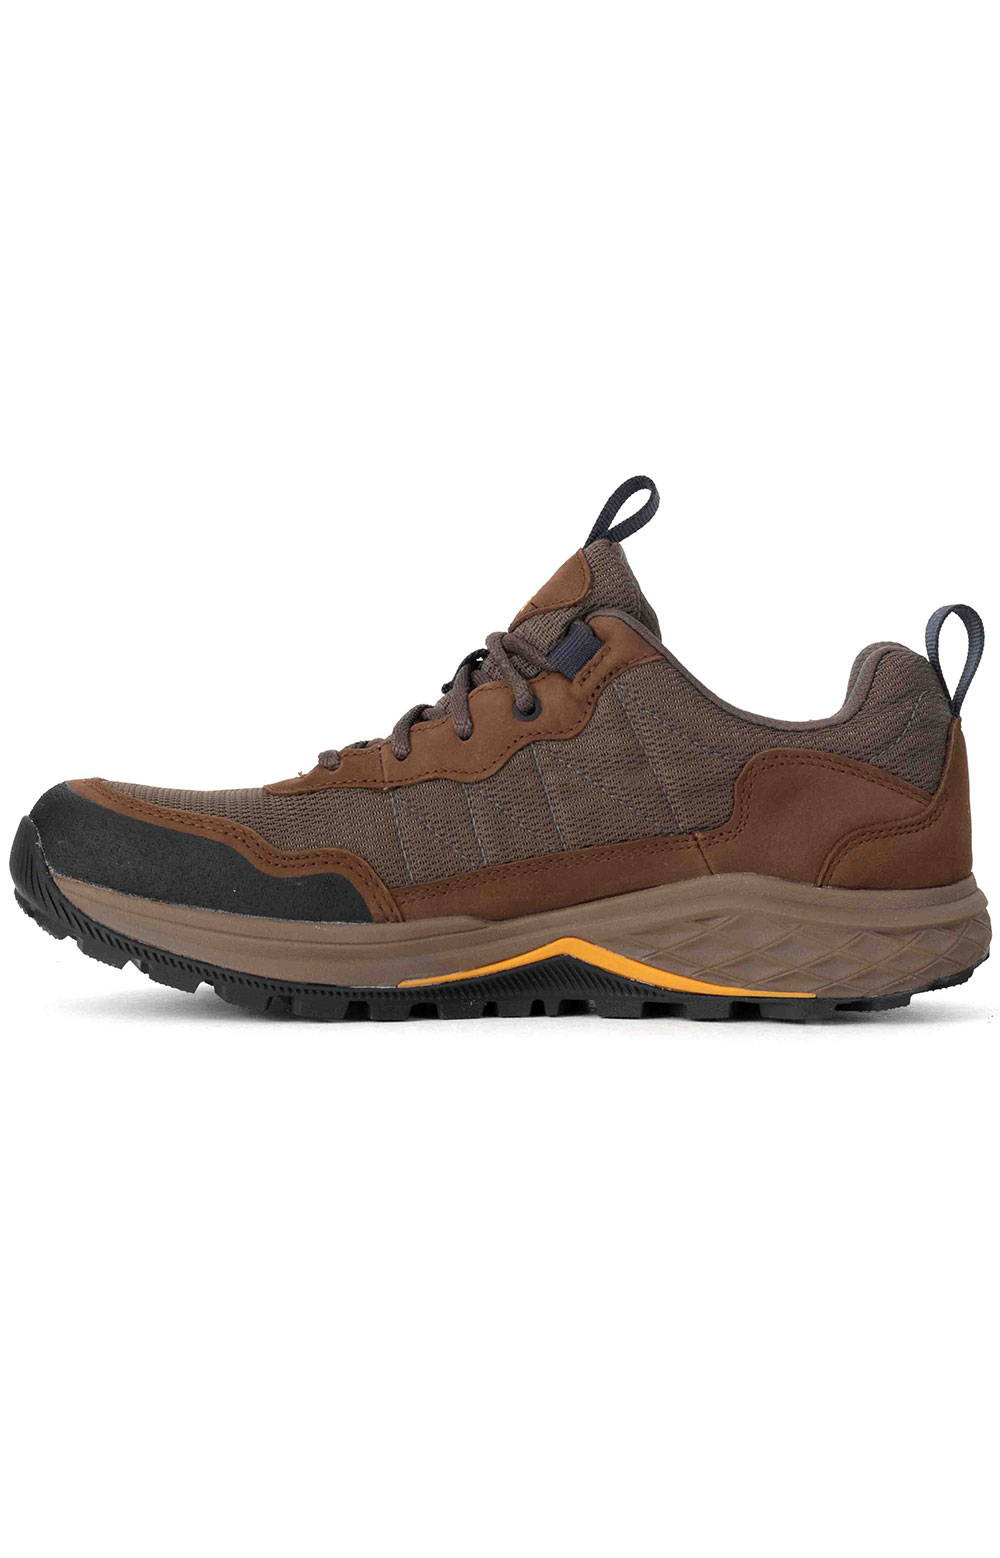 (1116627) Ridgeview Low Shoes - Brown  4